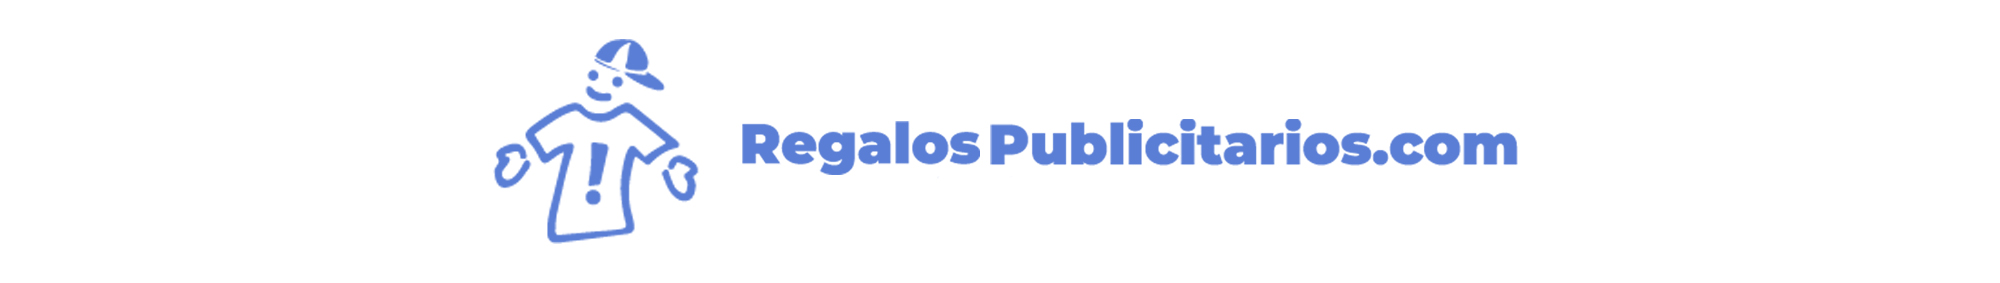 Blog de ideas de regalos publicitarios